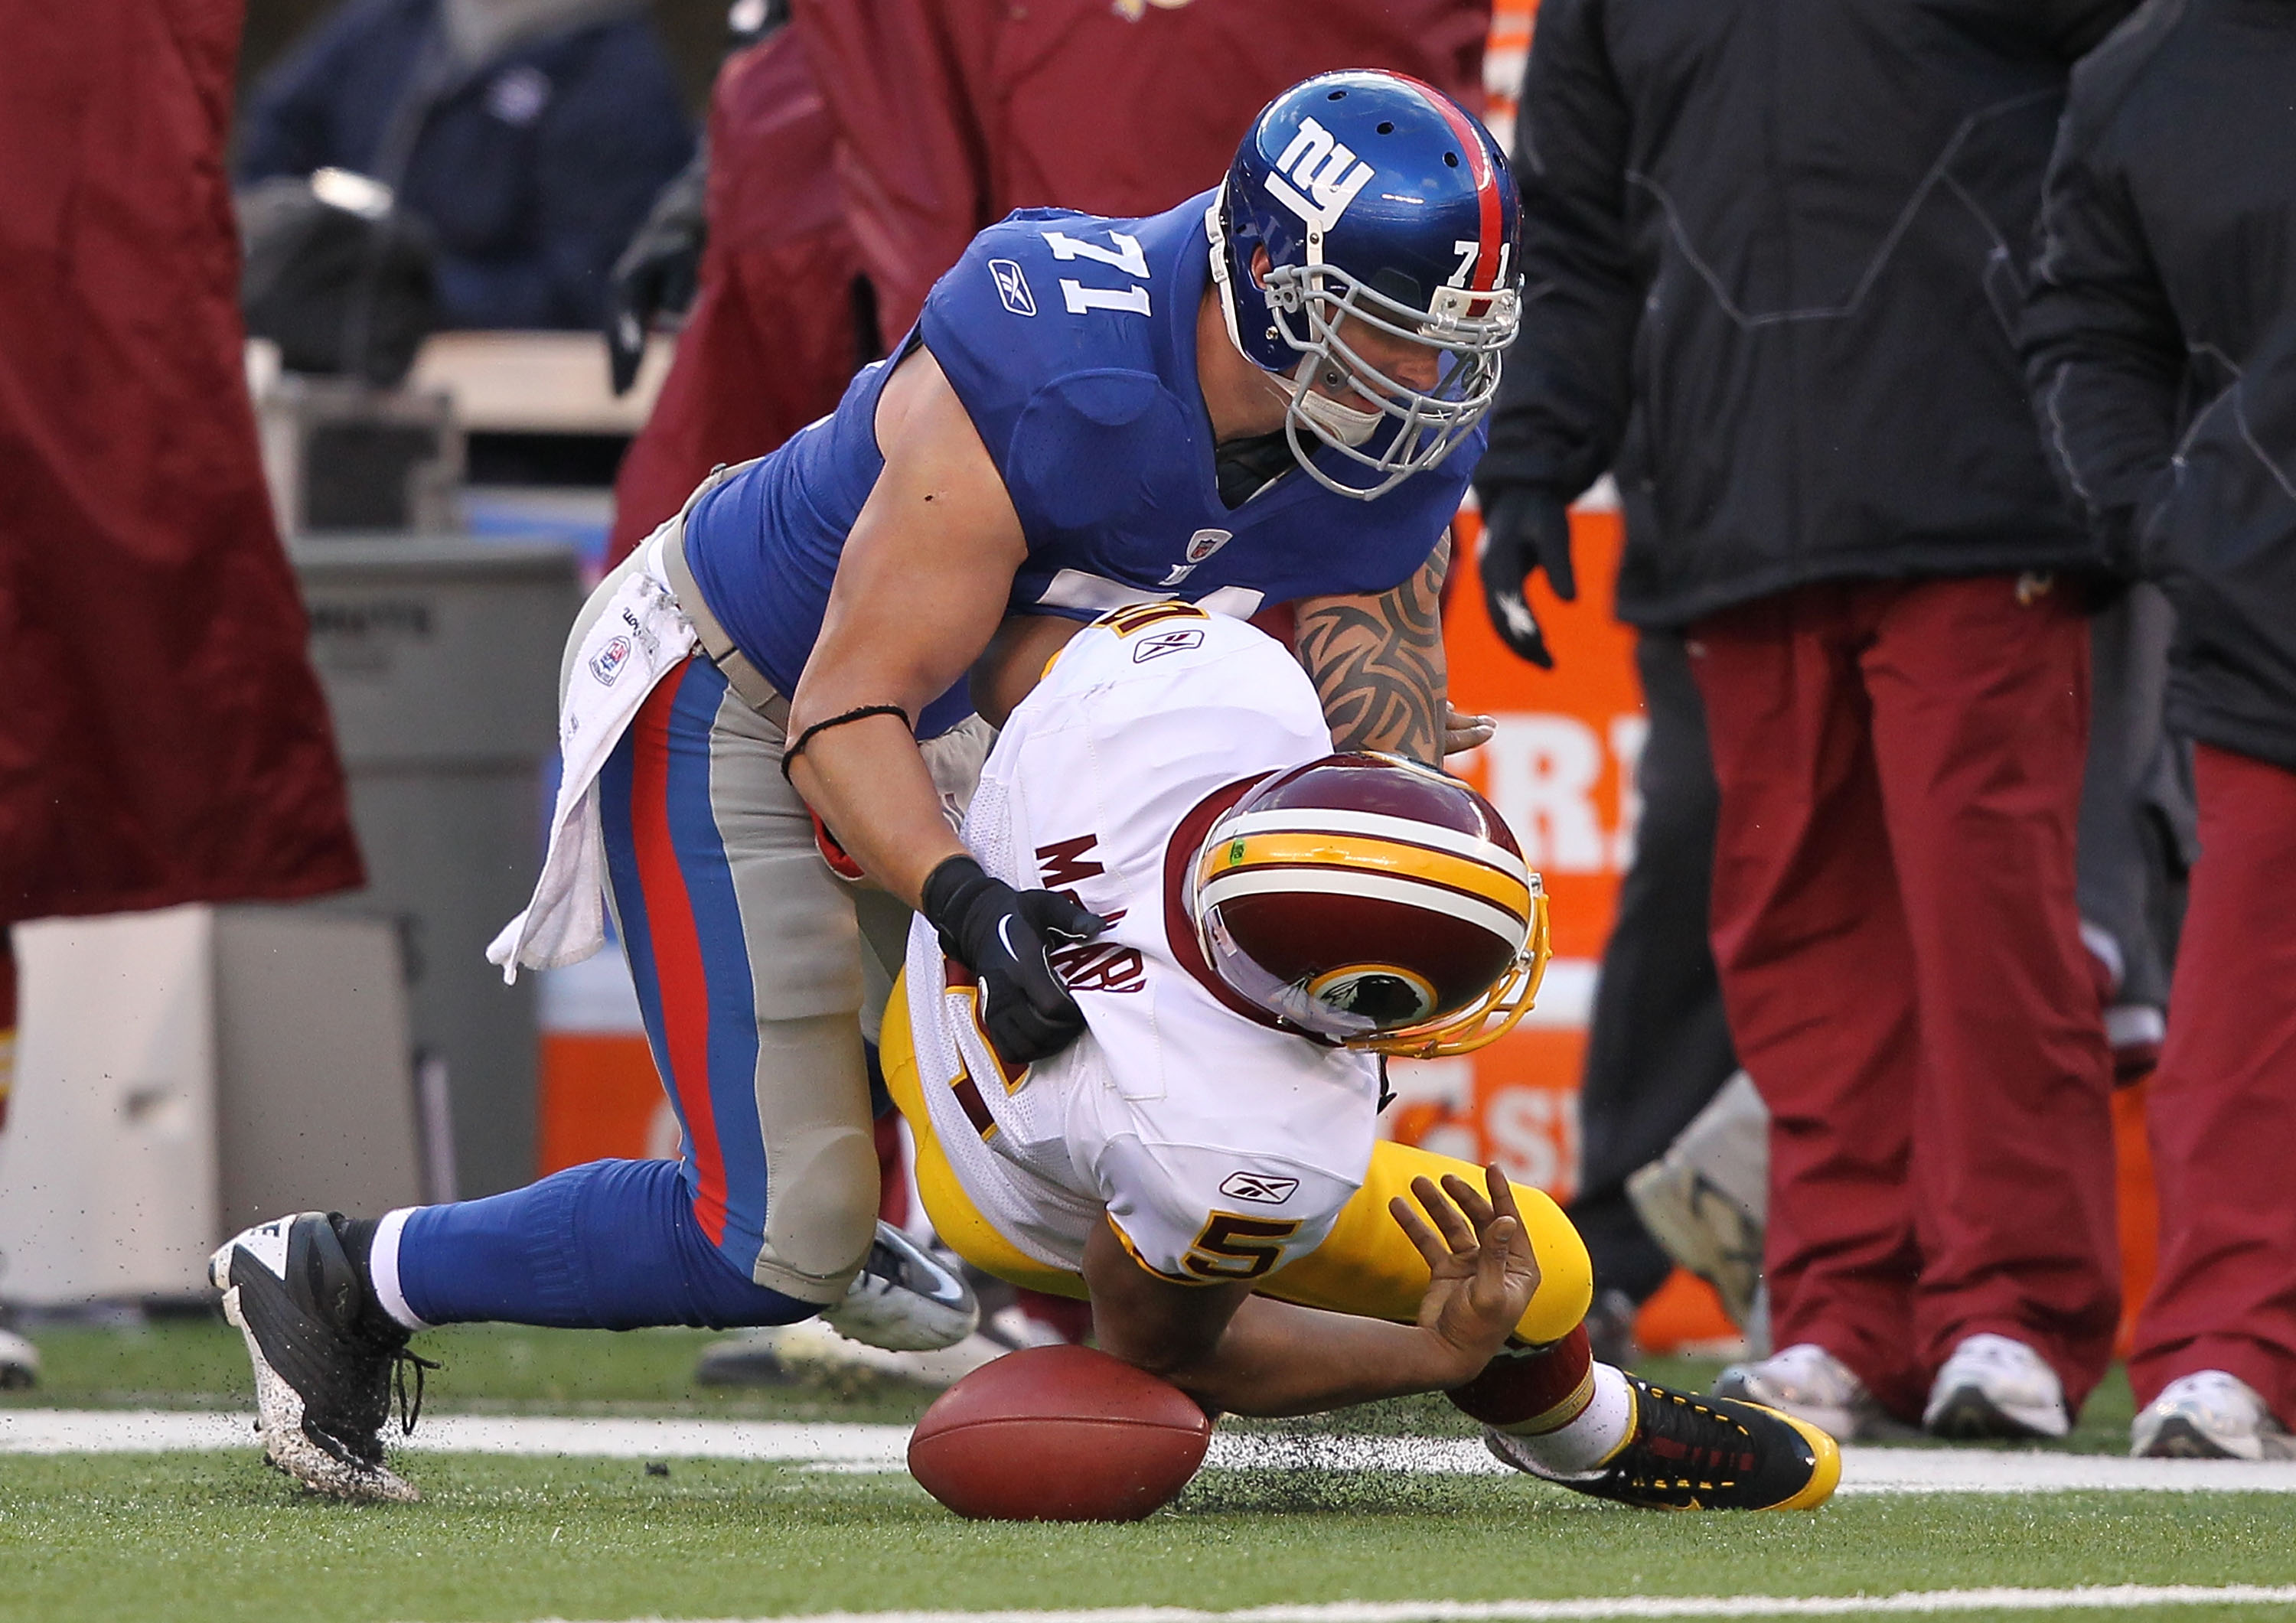 EAST RUTHERFORD, NJ - DECEMBER 05:  Dave Tollefson #71 of the New York Giants sacks Donovan McNabb #5 of the Washington Redskins who fumbles and the ball is recovered by Corey Webster #23 during their game on December 5, 2010 at The New Meadowlands Stadiu